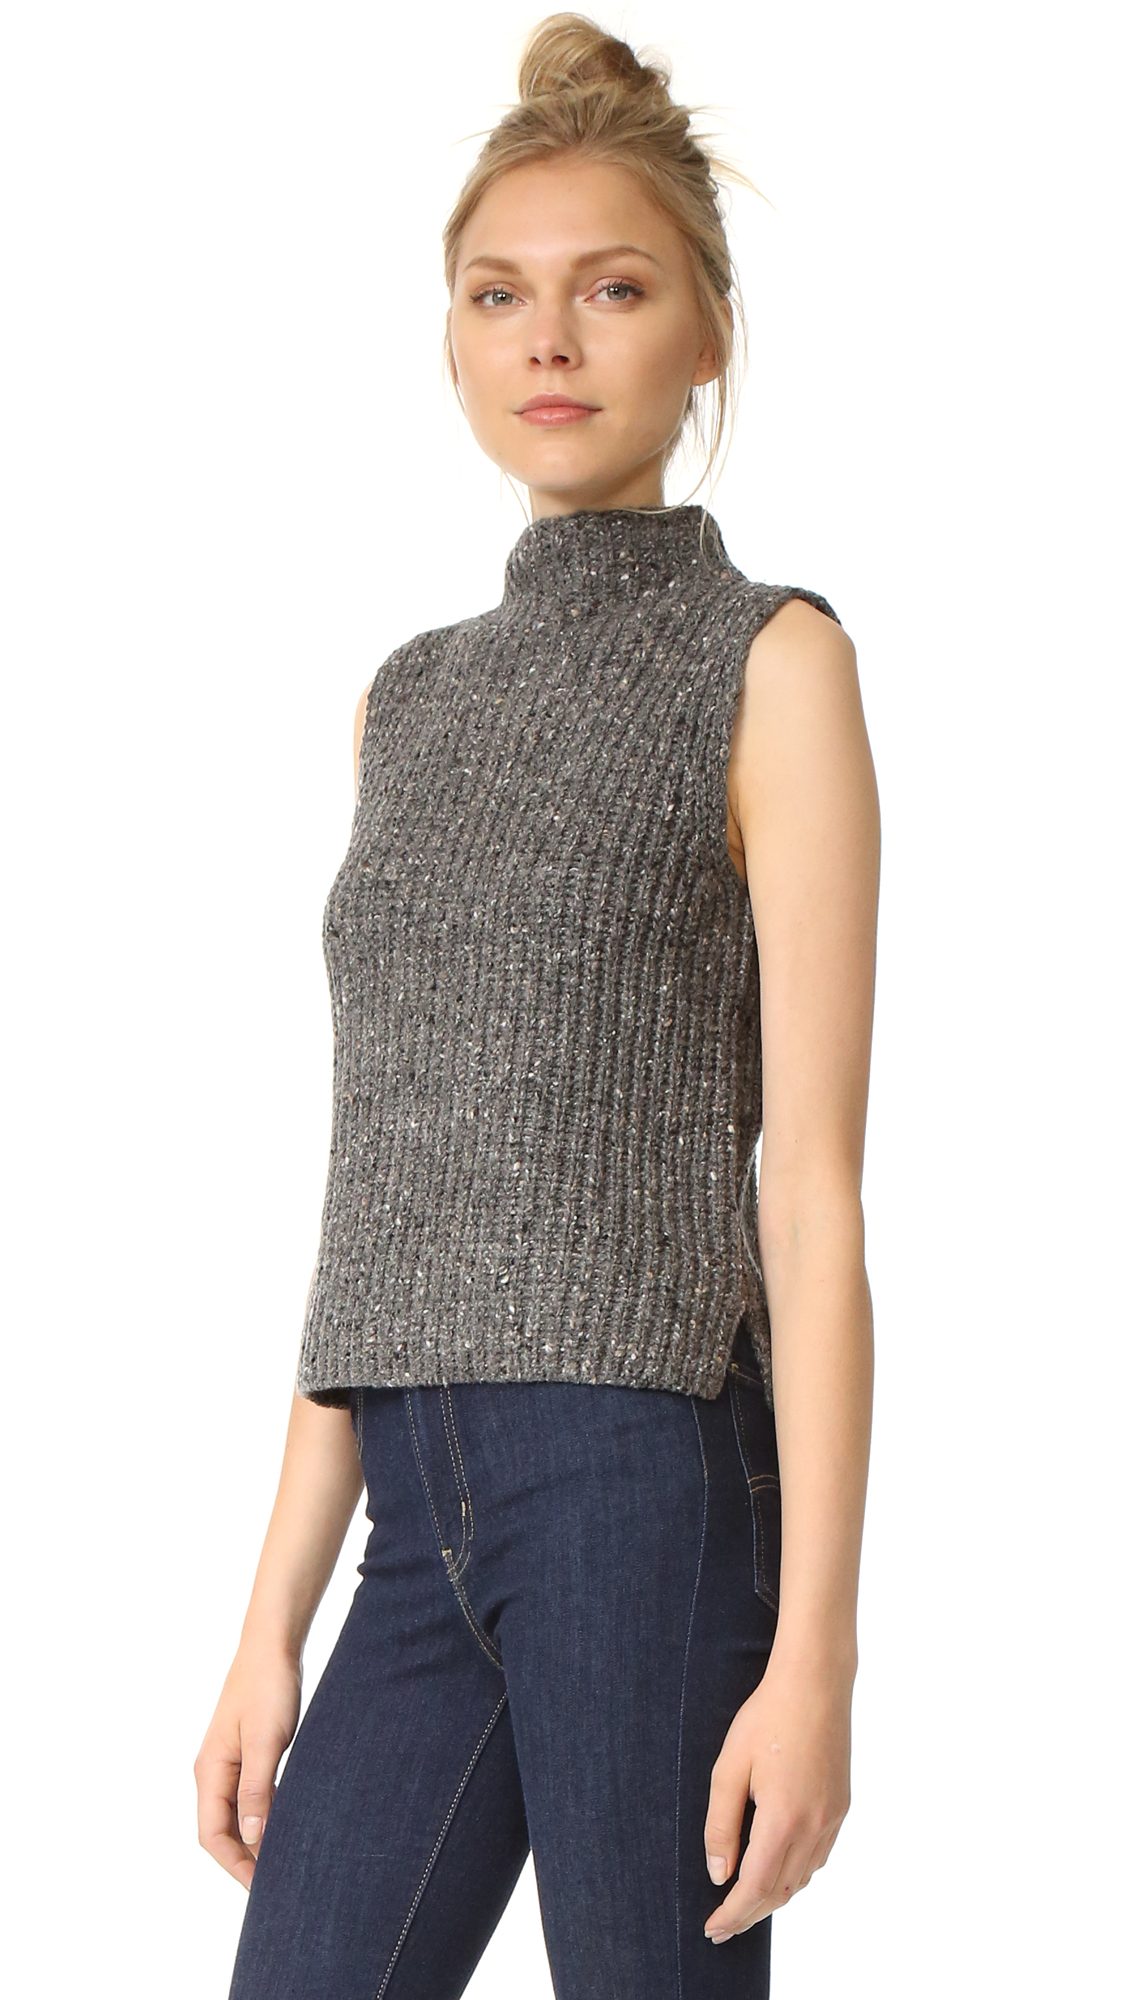 e7ac58d89fede5 Madewell Donegal Madison Sleeveless Pullover